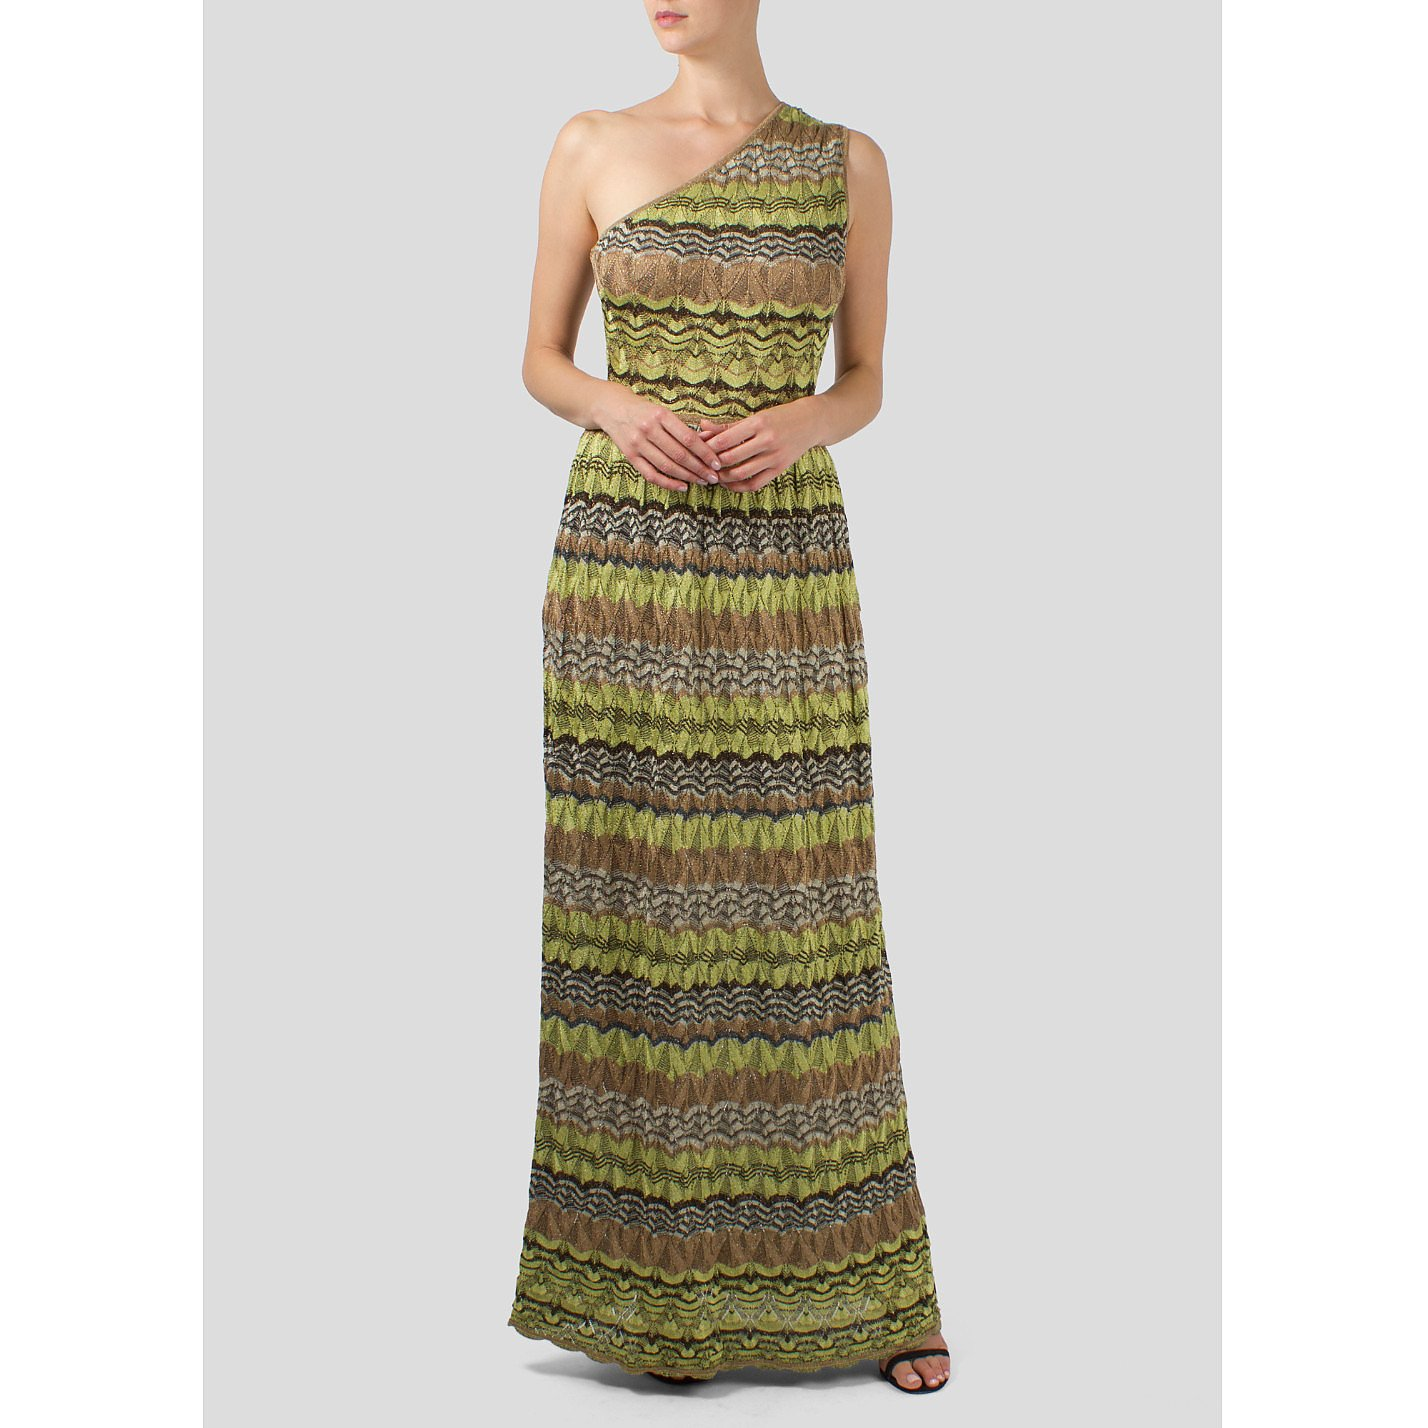 Missoni Patterned One Shoulder Gown